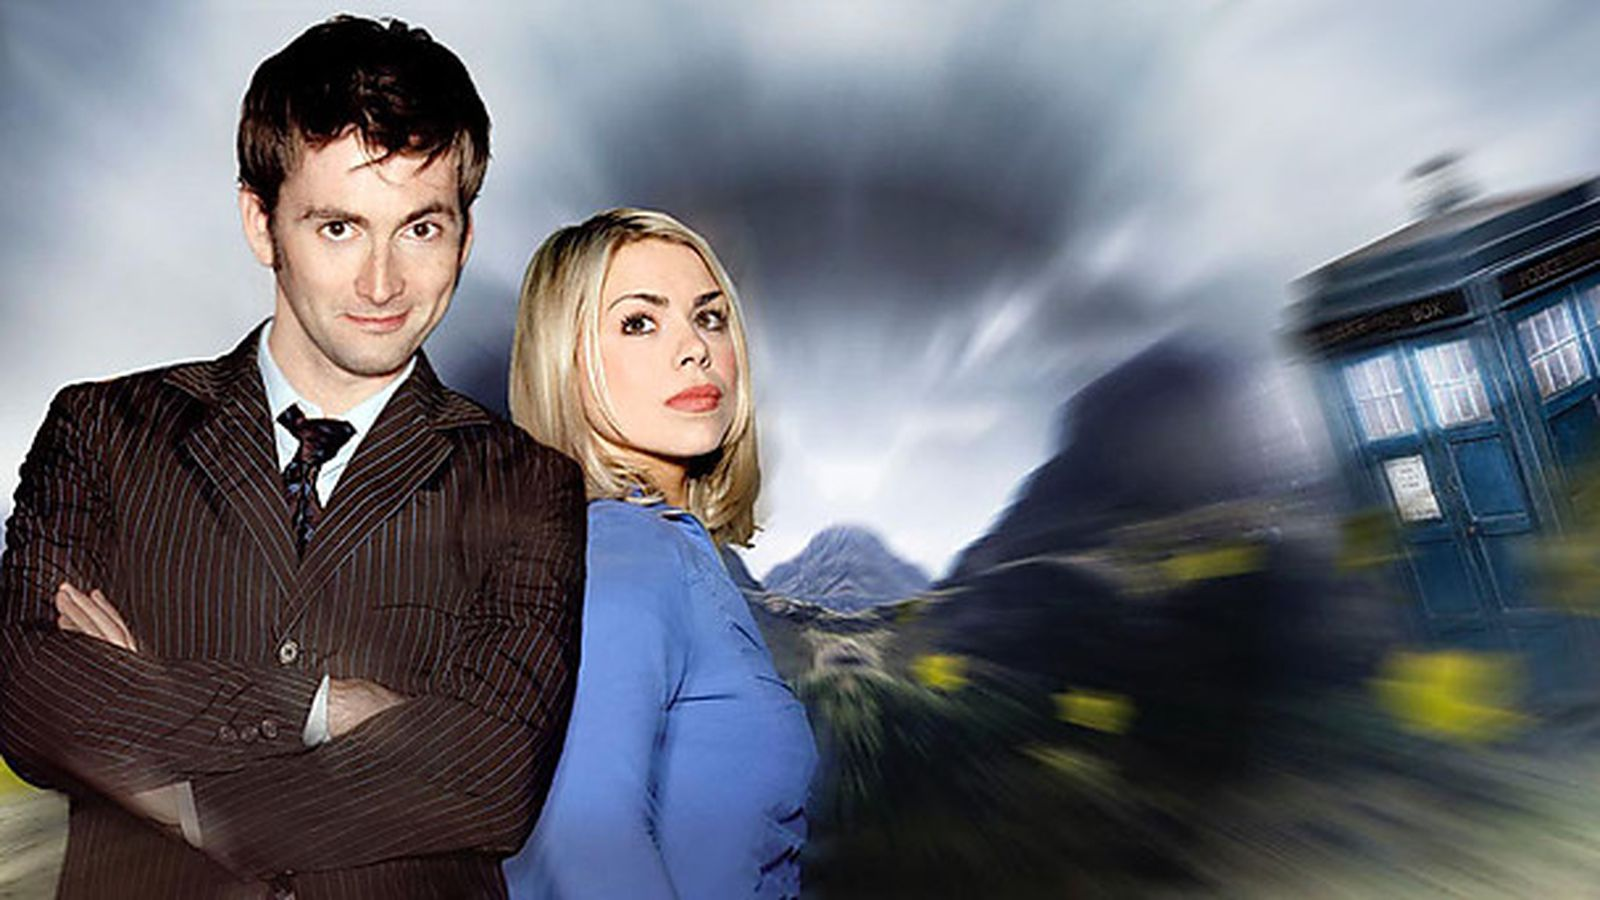 Adobe Images Search Past 39;doctor Who 39; Stars David Tennant Billie Piper To